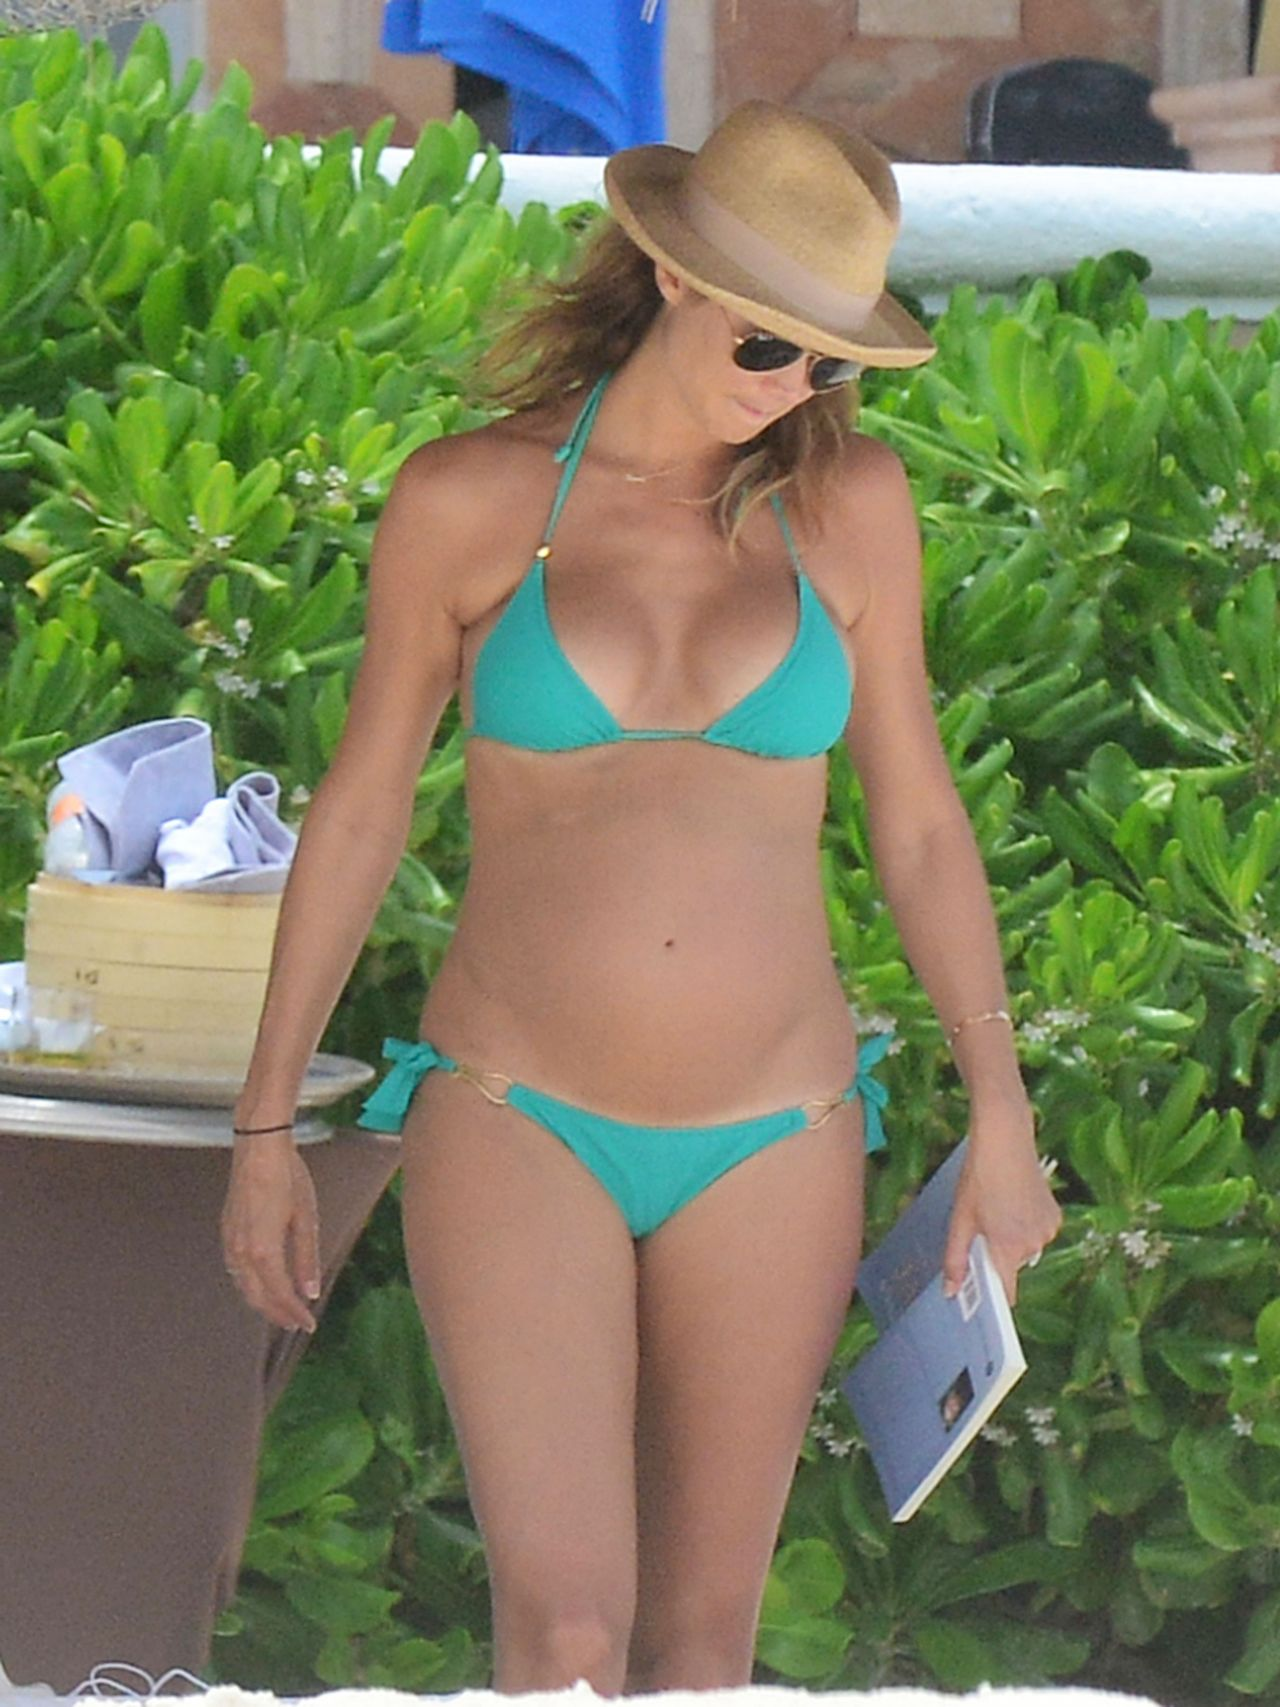 Stacy Keibler Bikini Candids - Beach in Cancun - May 2014